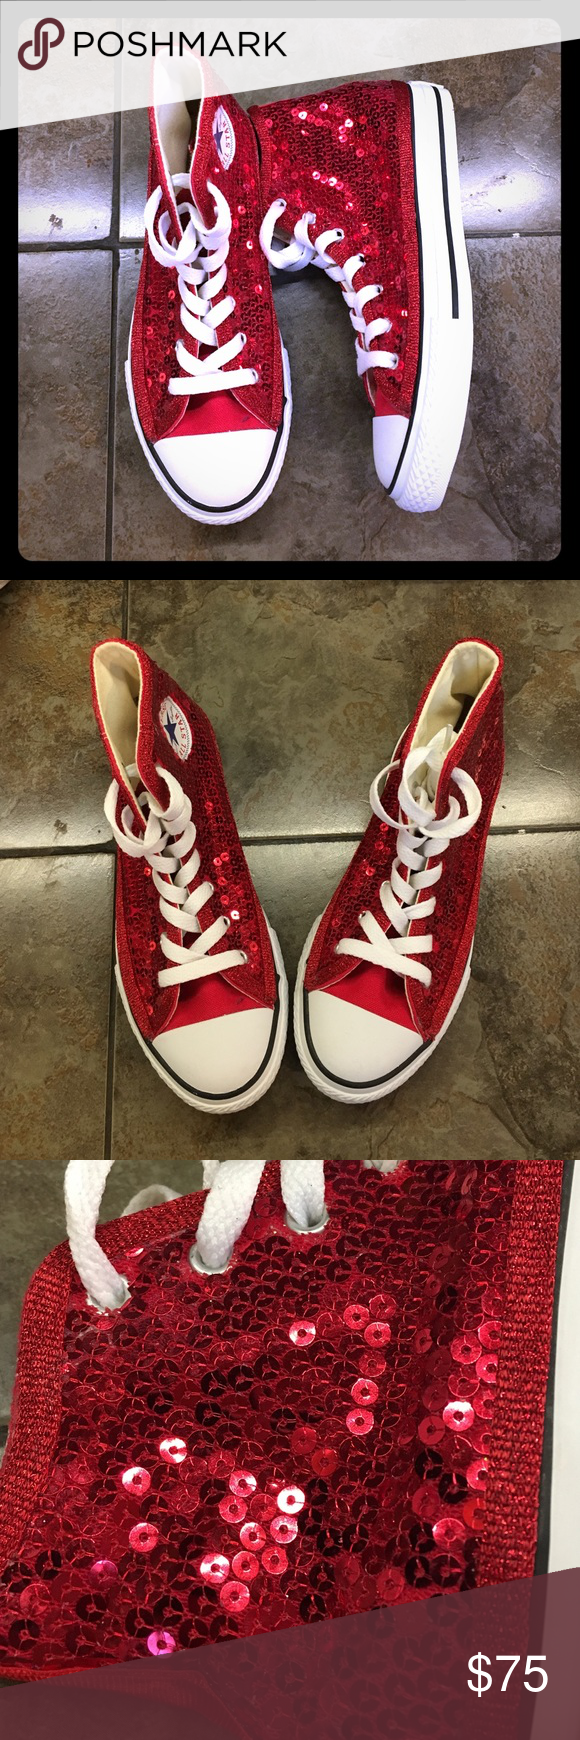 e4cd3aa91d1 Kids red sequin Converse high tops sneakers shoes Never been worn adorable  hi tops in a child size 2. Hand sequined by Princess Pumps.